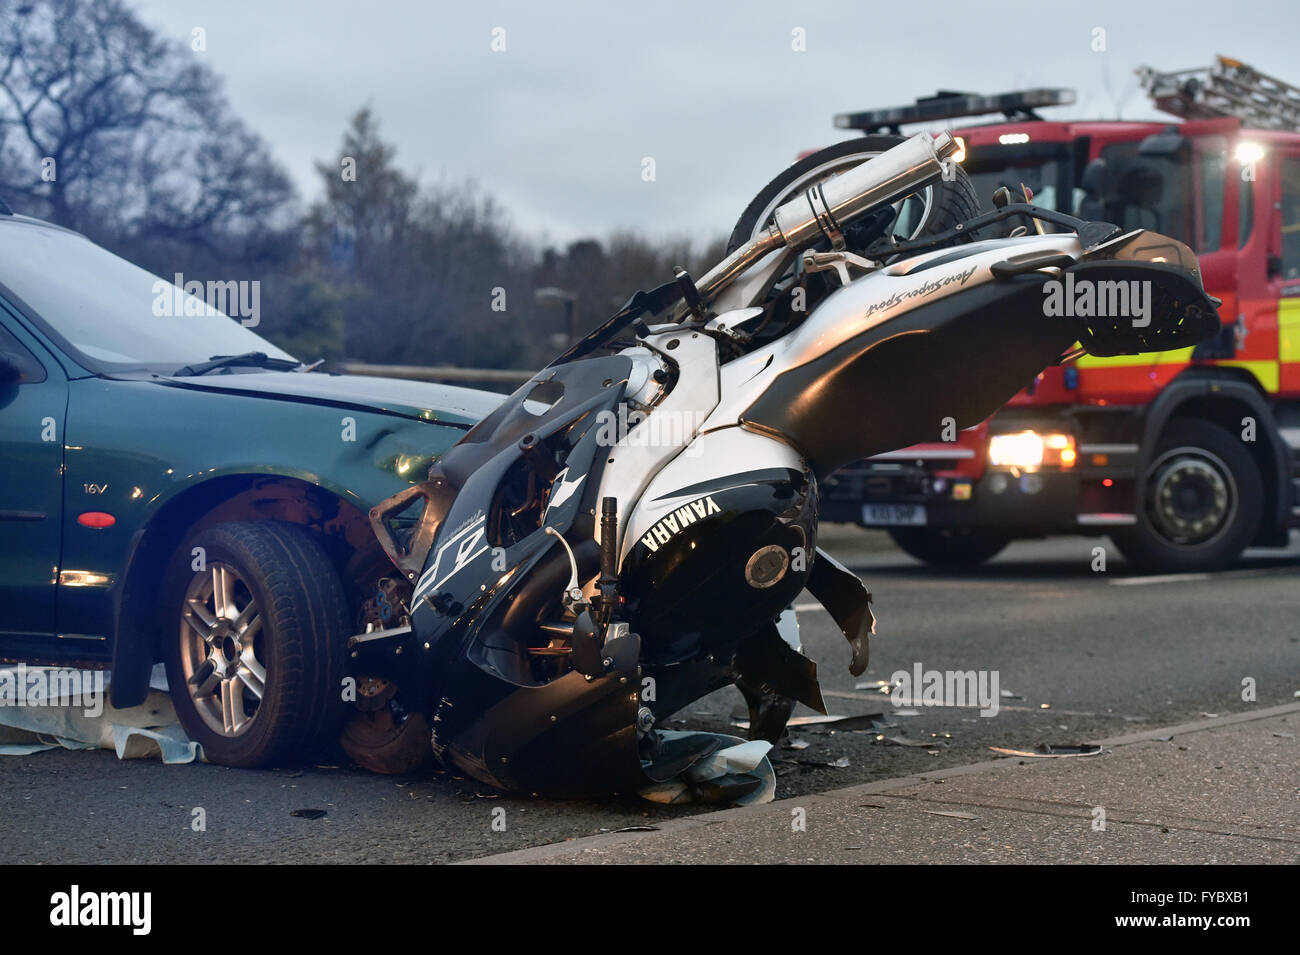 Motorbike crash into front of car. Yamaha Aero Super Sport bike upside down Fire engine in back ground   scene late - Stock Image